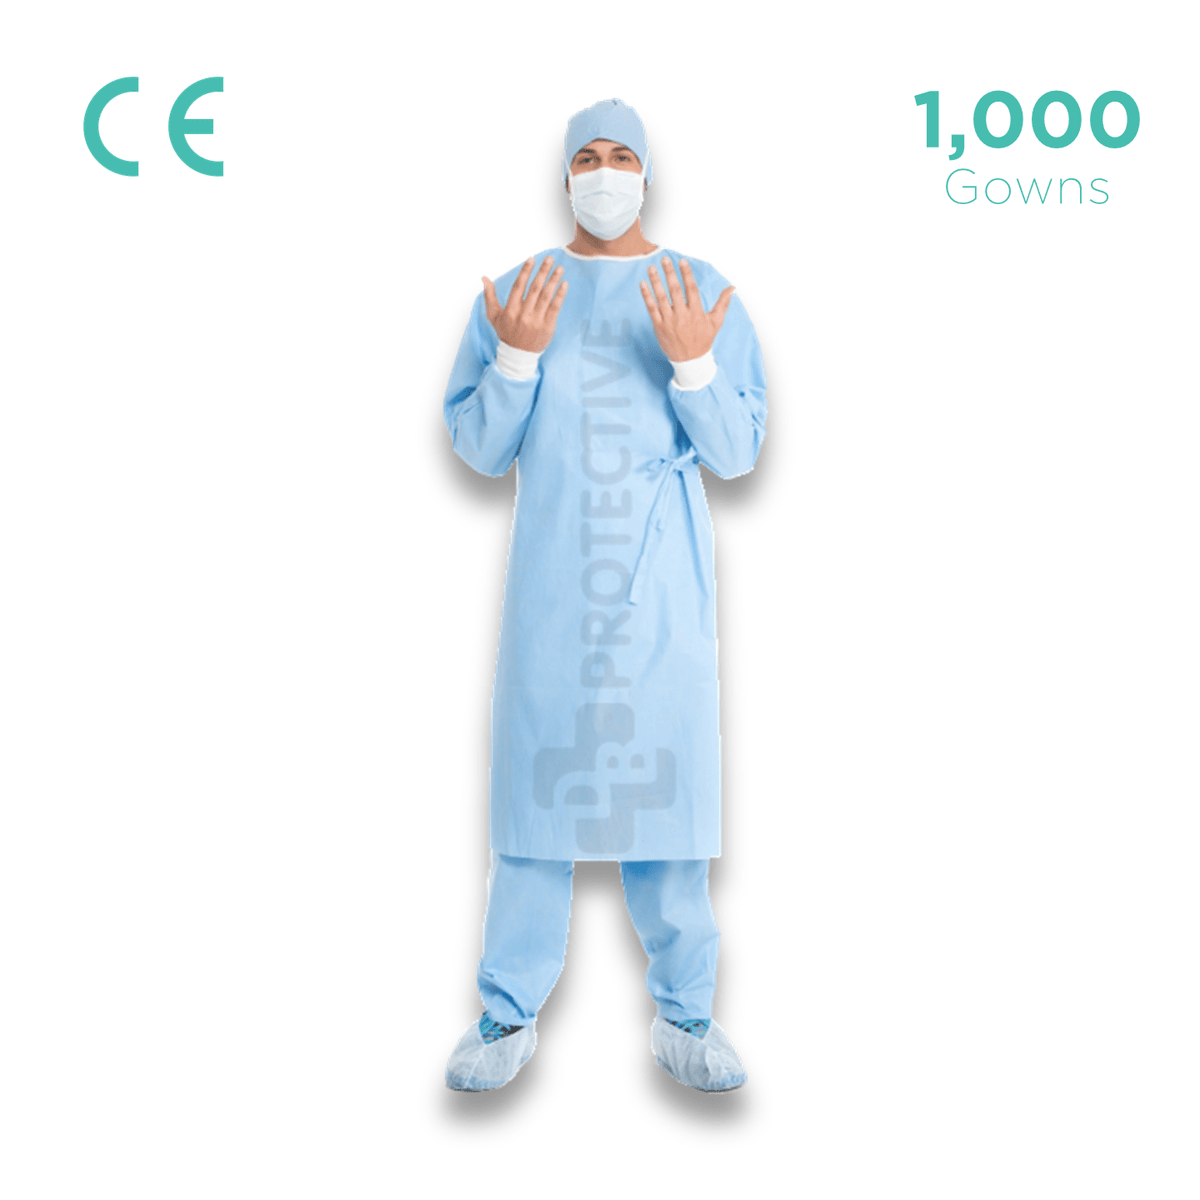 PPE Disposable Gowns (Polypropylene + PE Gowns) - Pack of 1,000.